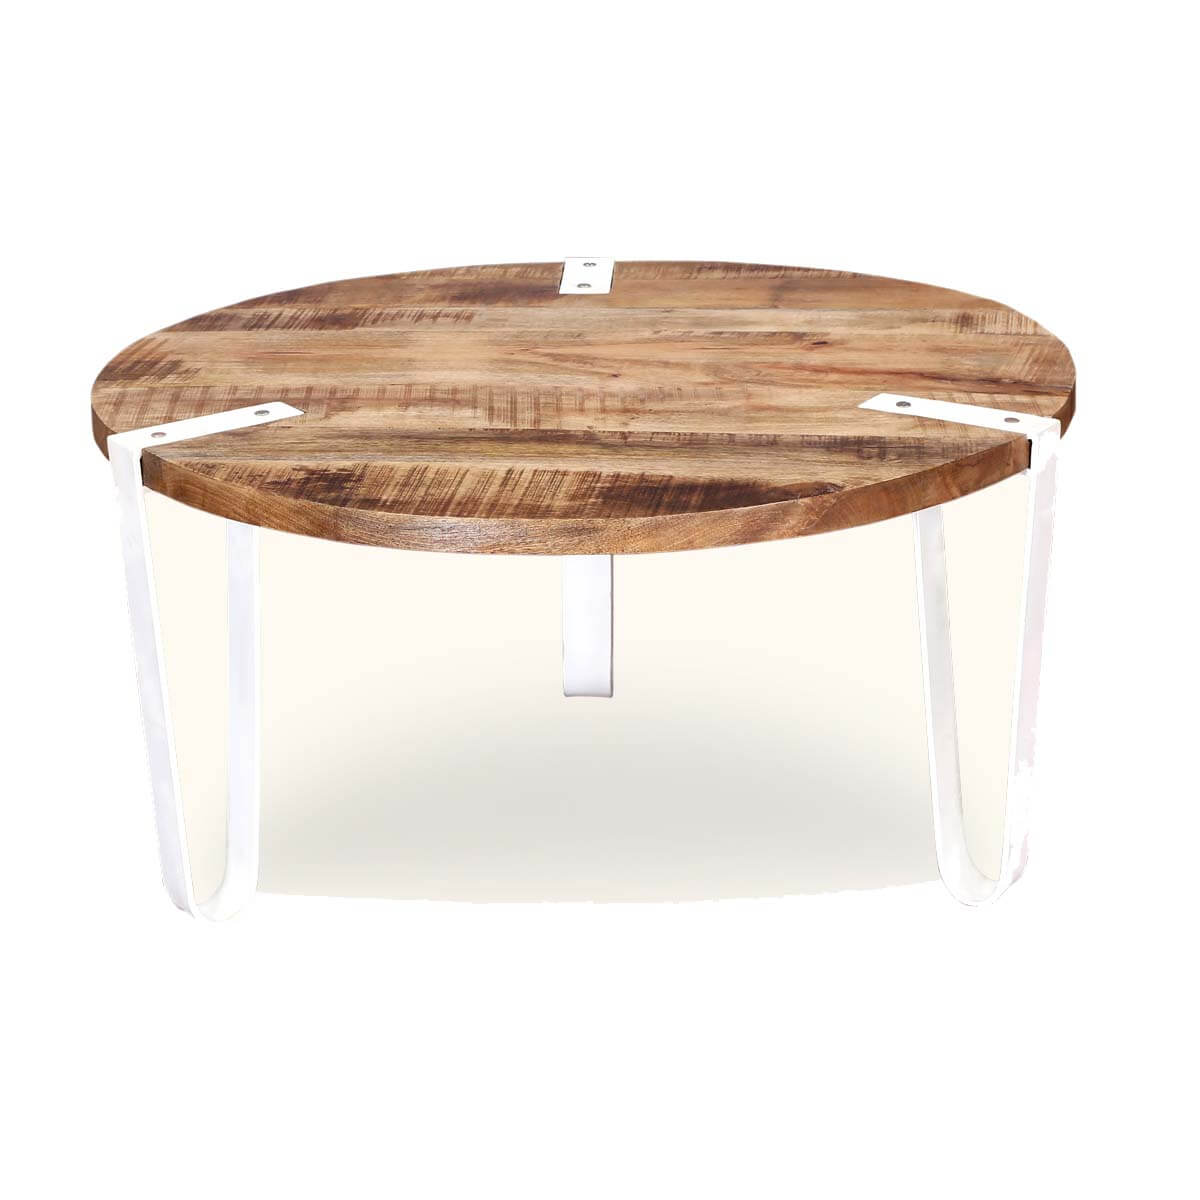 Very Impressive portraiture of Victoria Mango Wood Top & White Iron Legs Round Accent Coffee Table with #9B7E30 color and 1200x1200 pixels